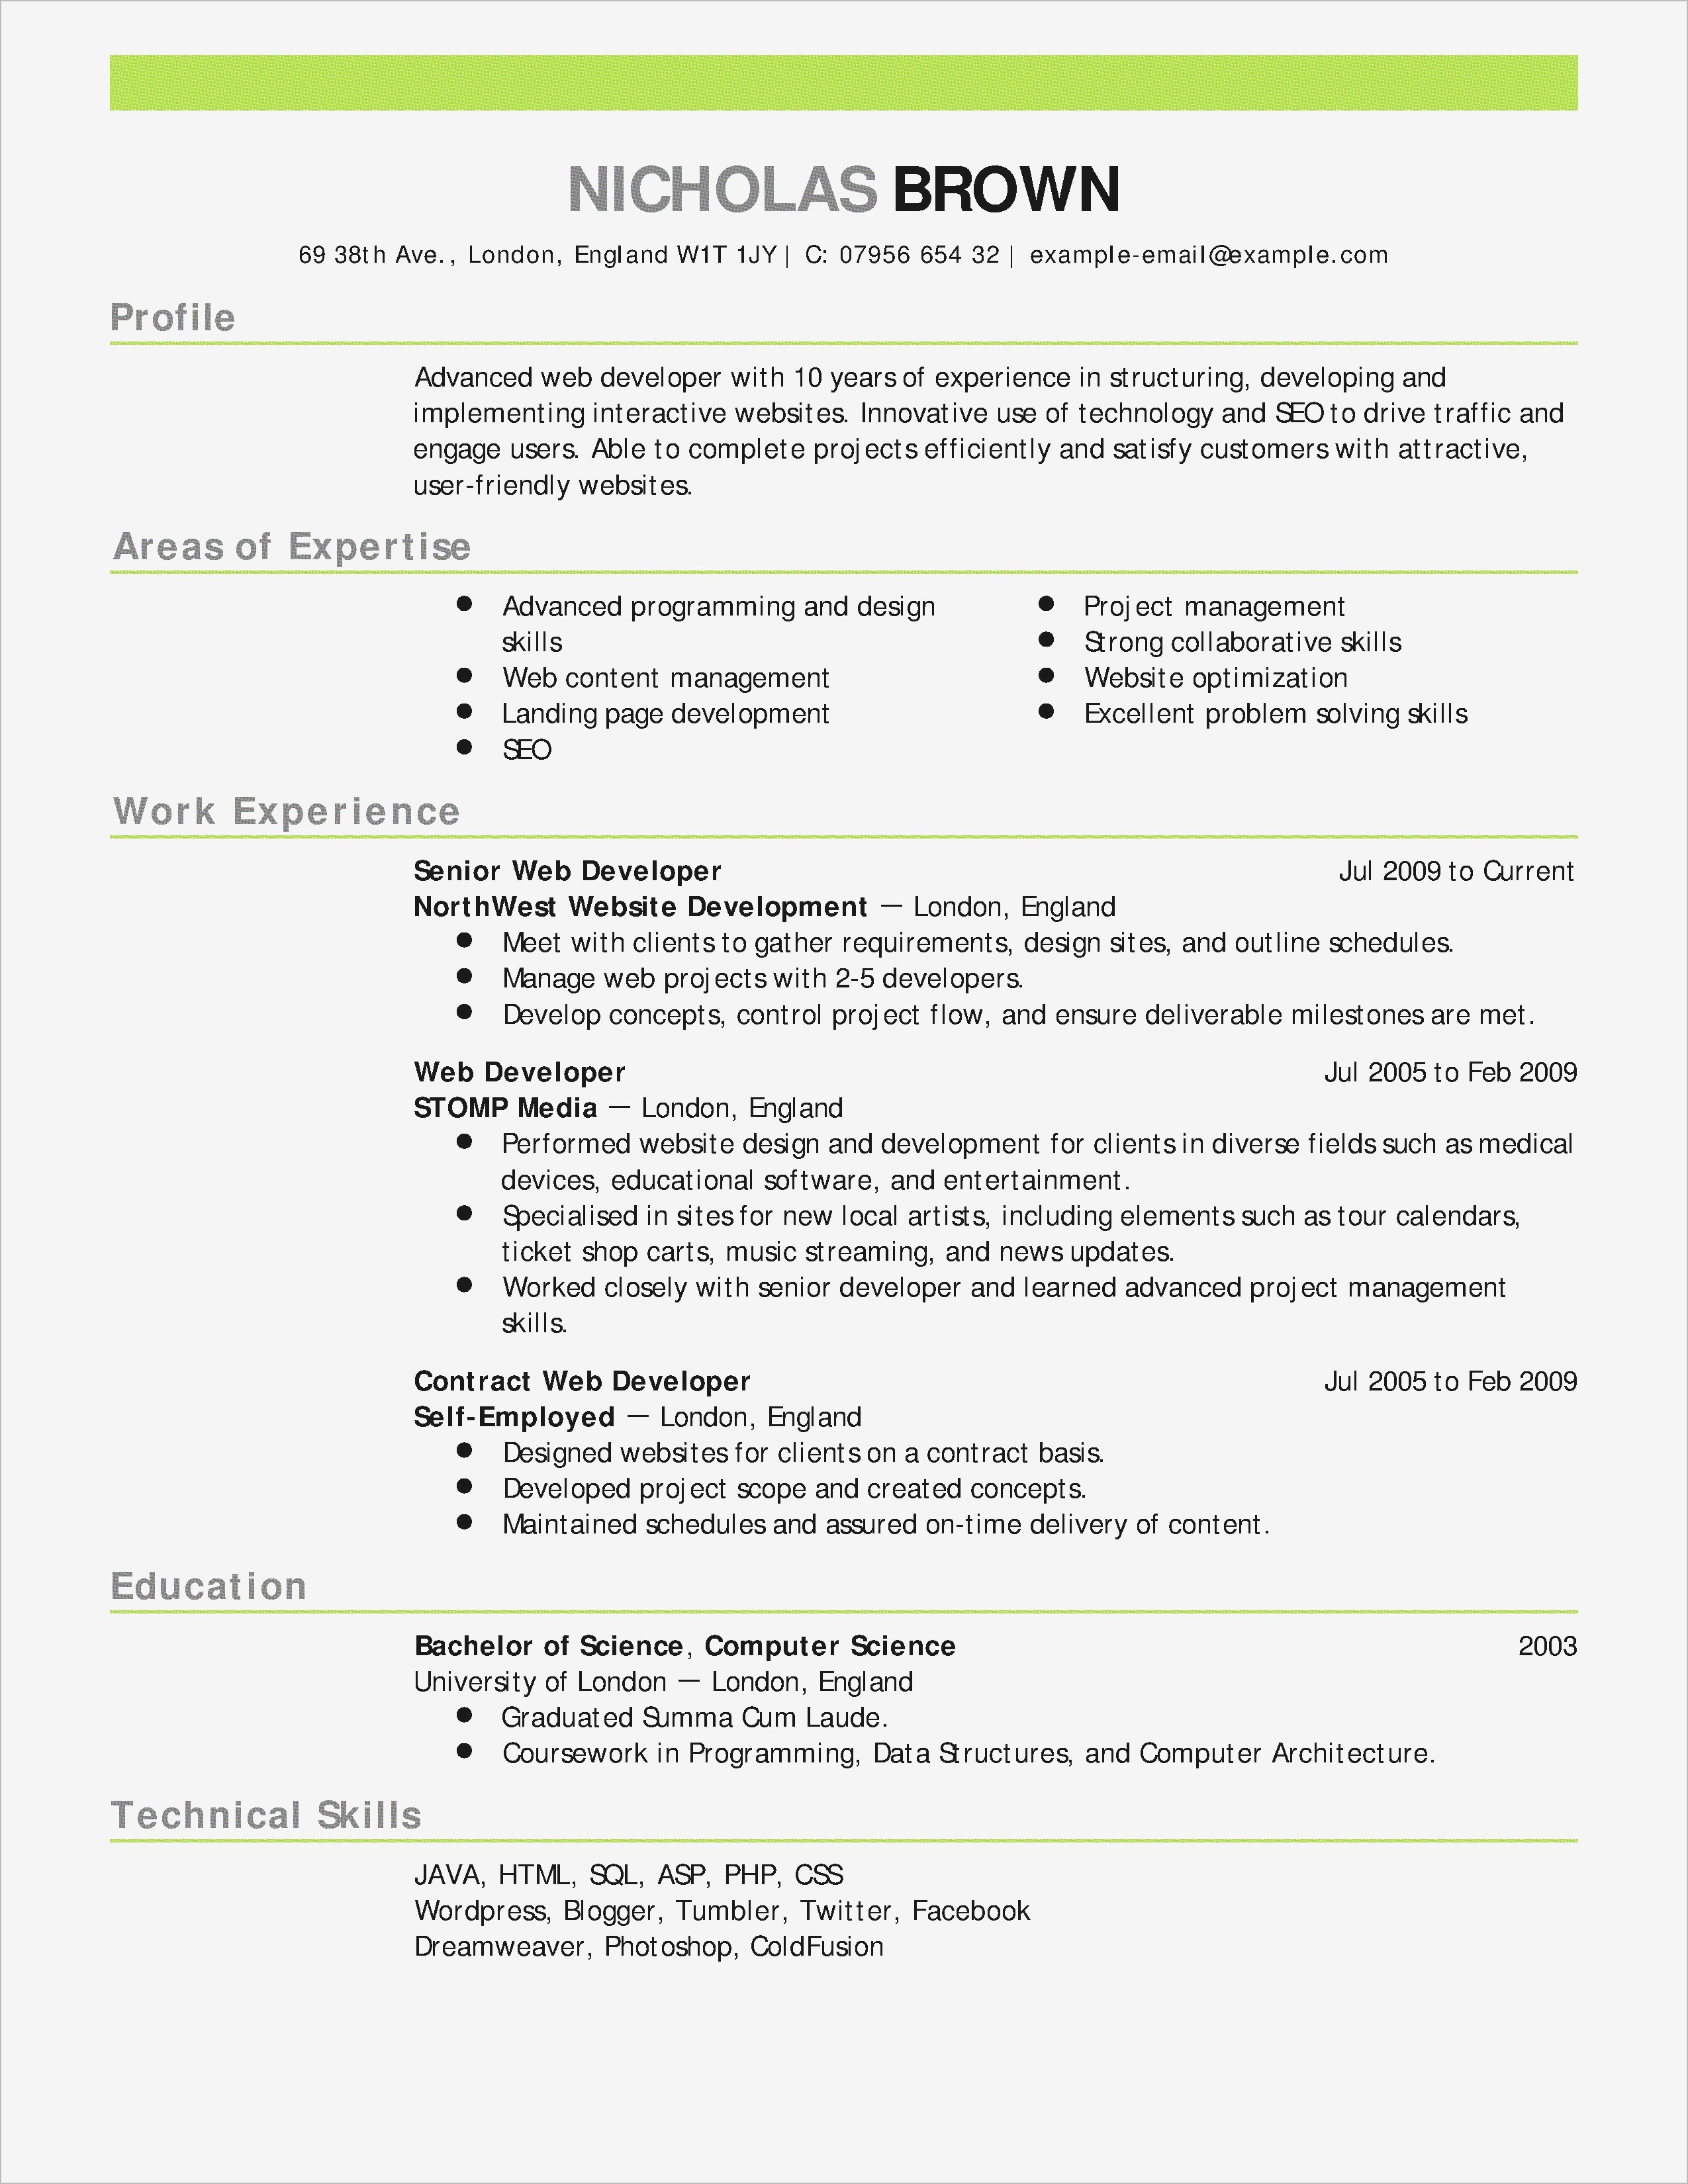 Yoga Teacher Resume Template - Sample Teacher Resumes Awesome Resume format for Teachers Ideas